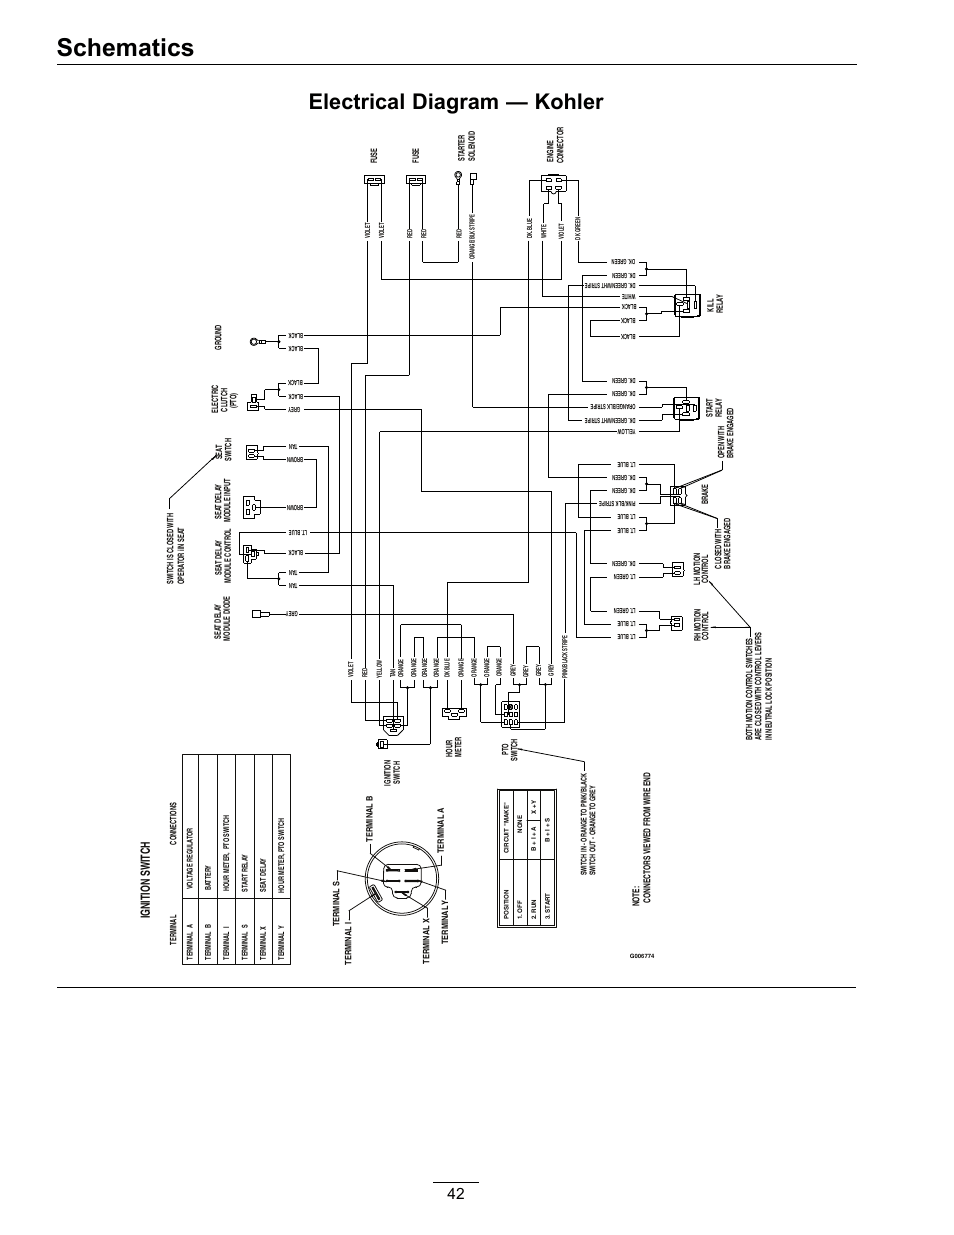 wiring schematic for exmark lz27kc604